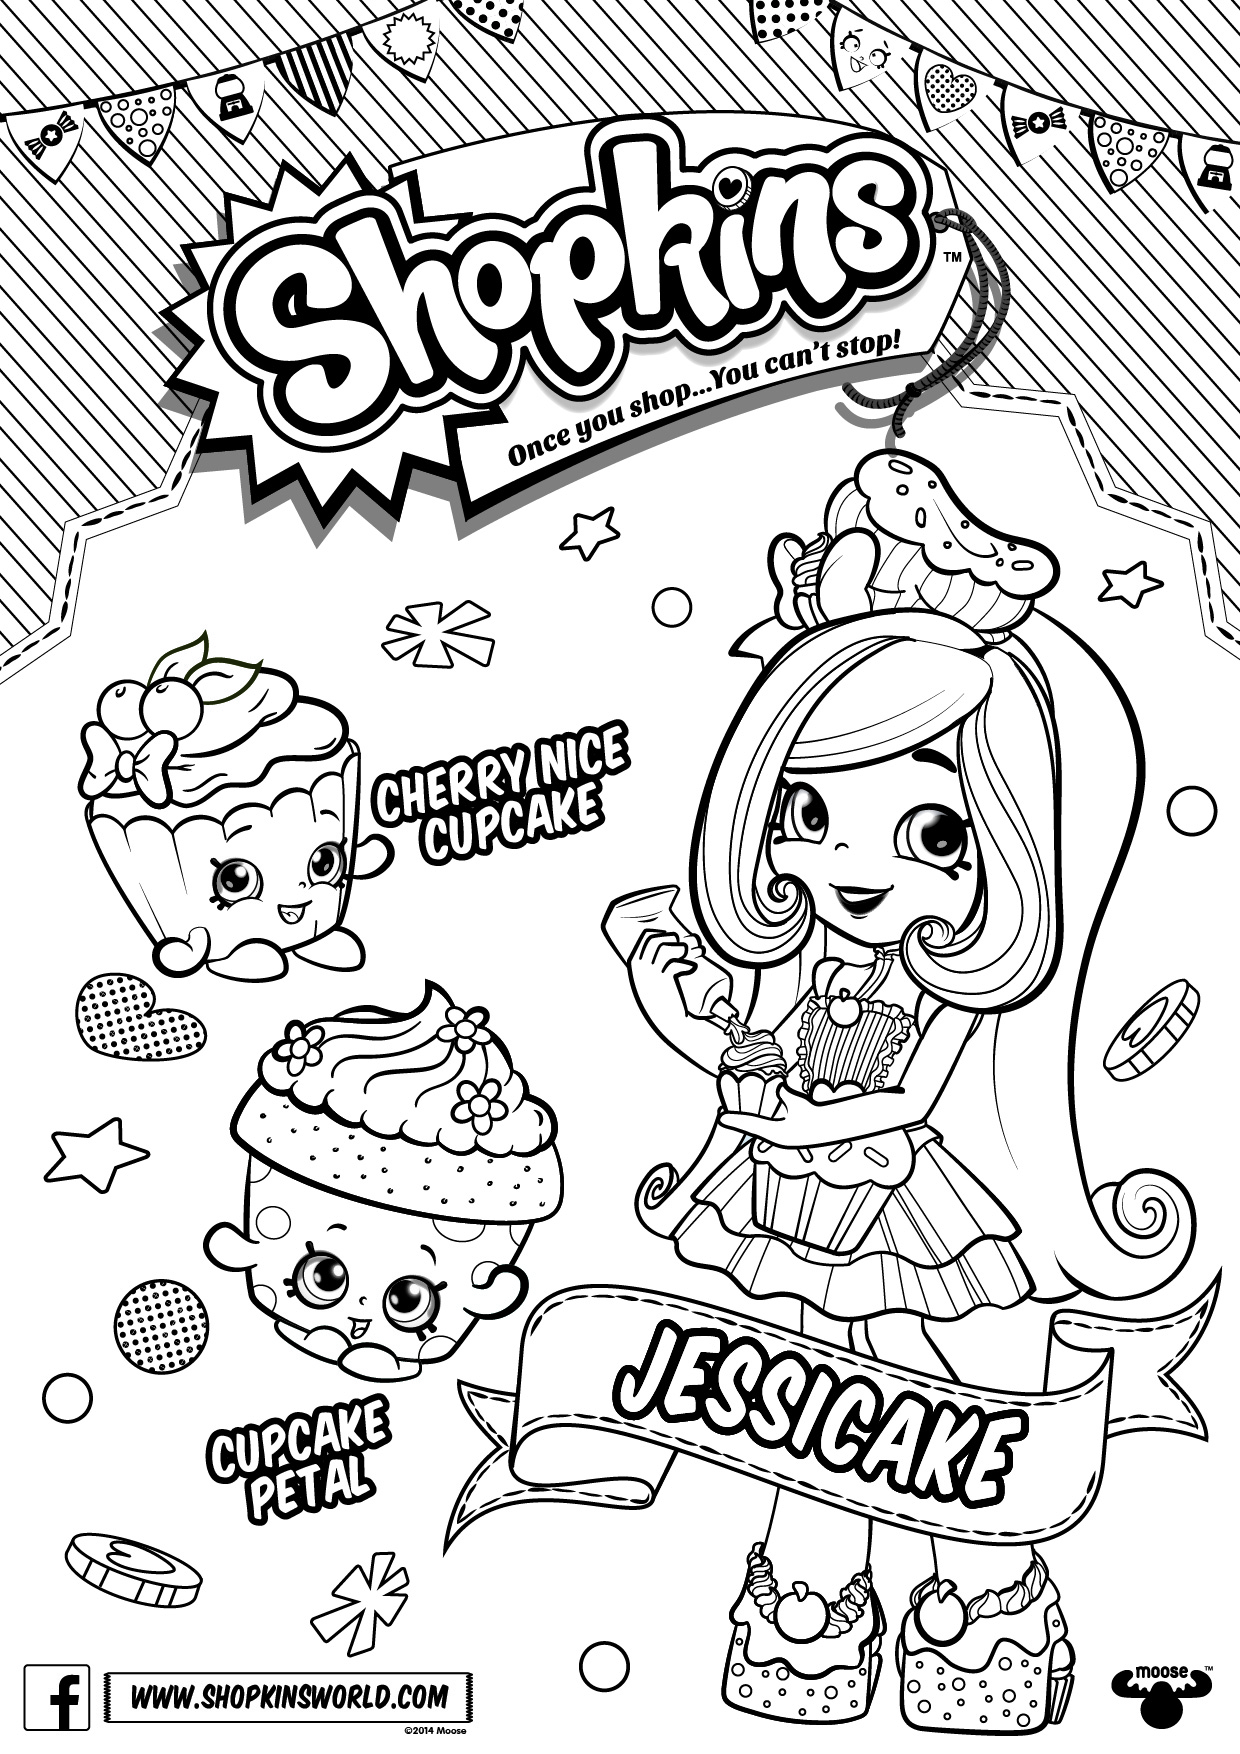 Free Shopkins Shoppies Coloring Pages Chef Club printable